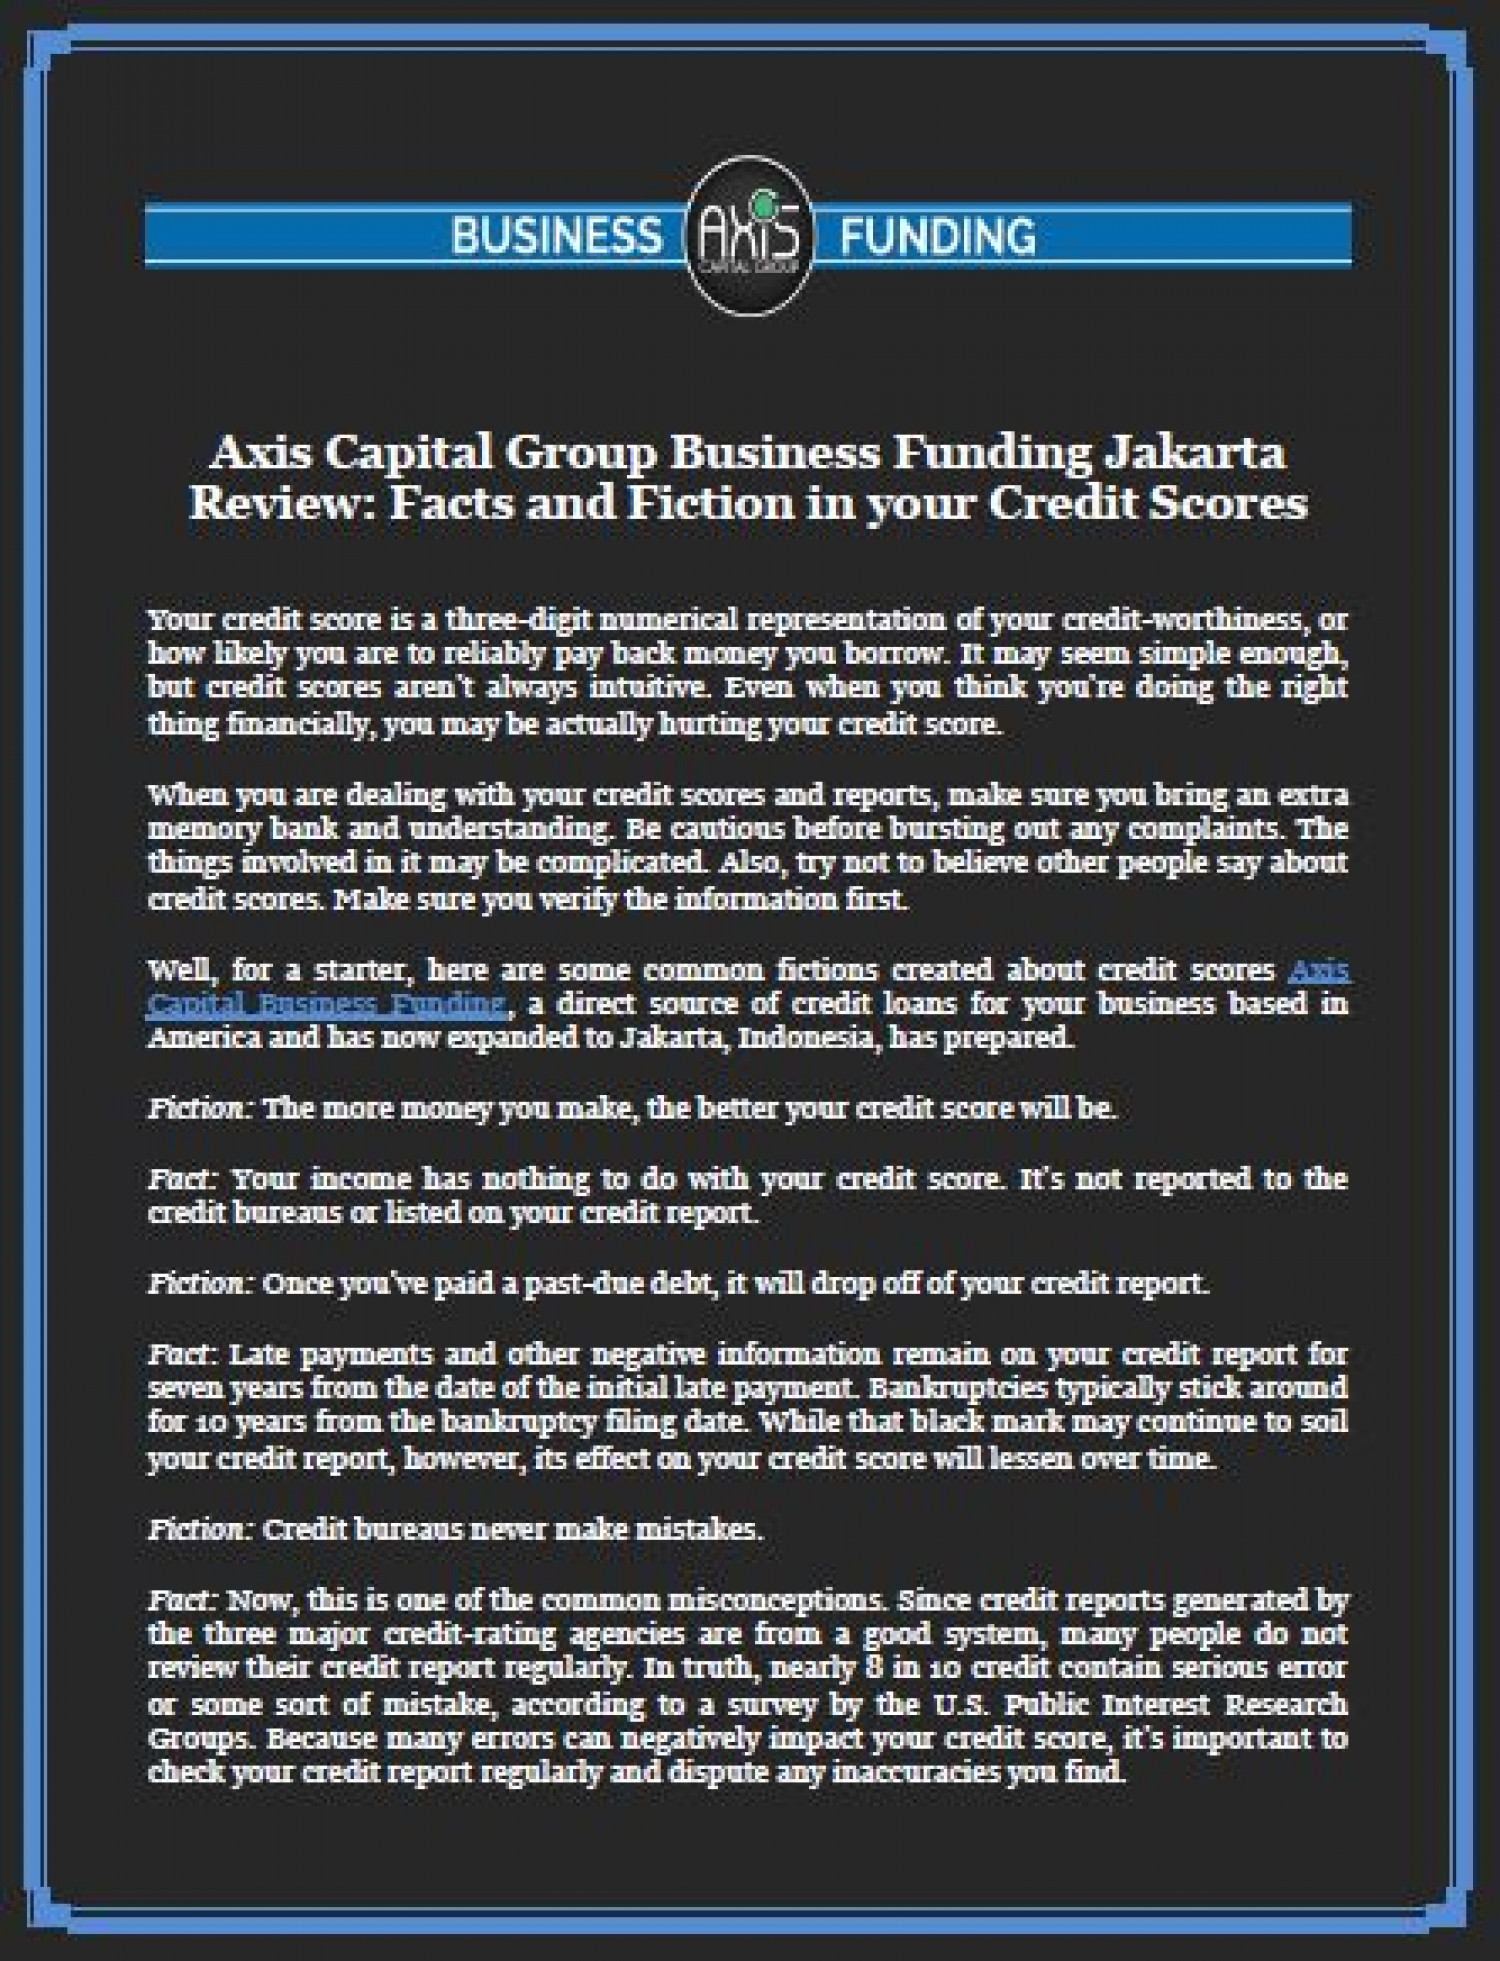 Axis Capital Group Business Funding Jakarta Review: Facts and Fiction in your Credit Scores Infographic